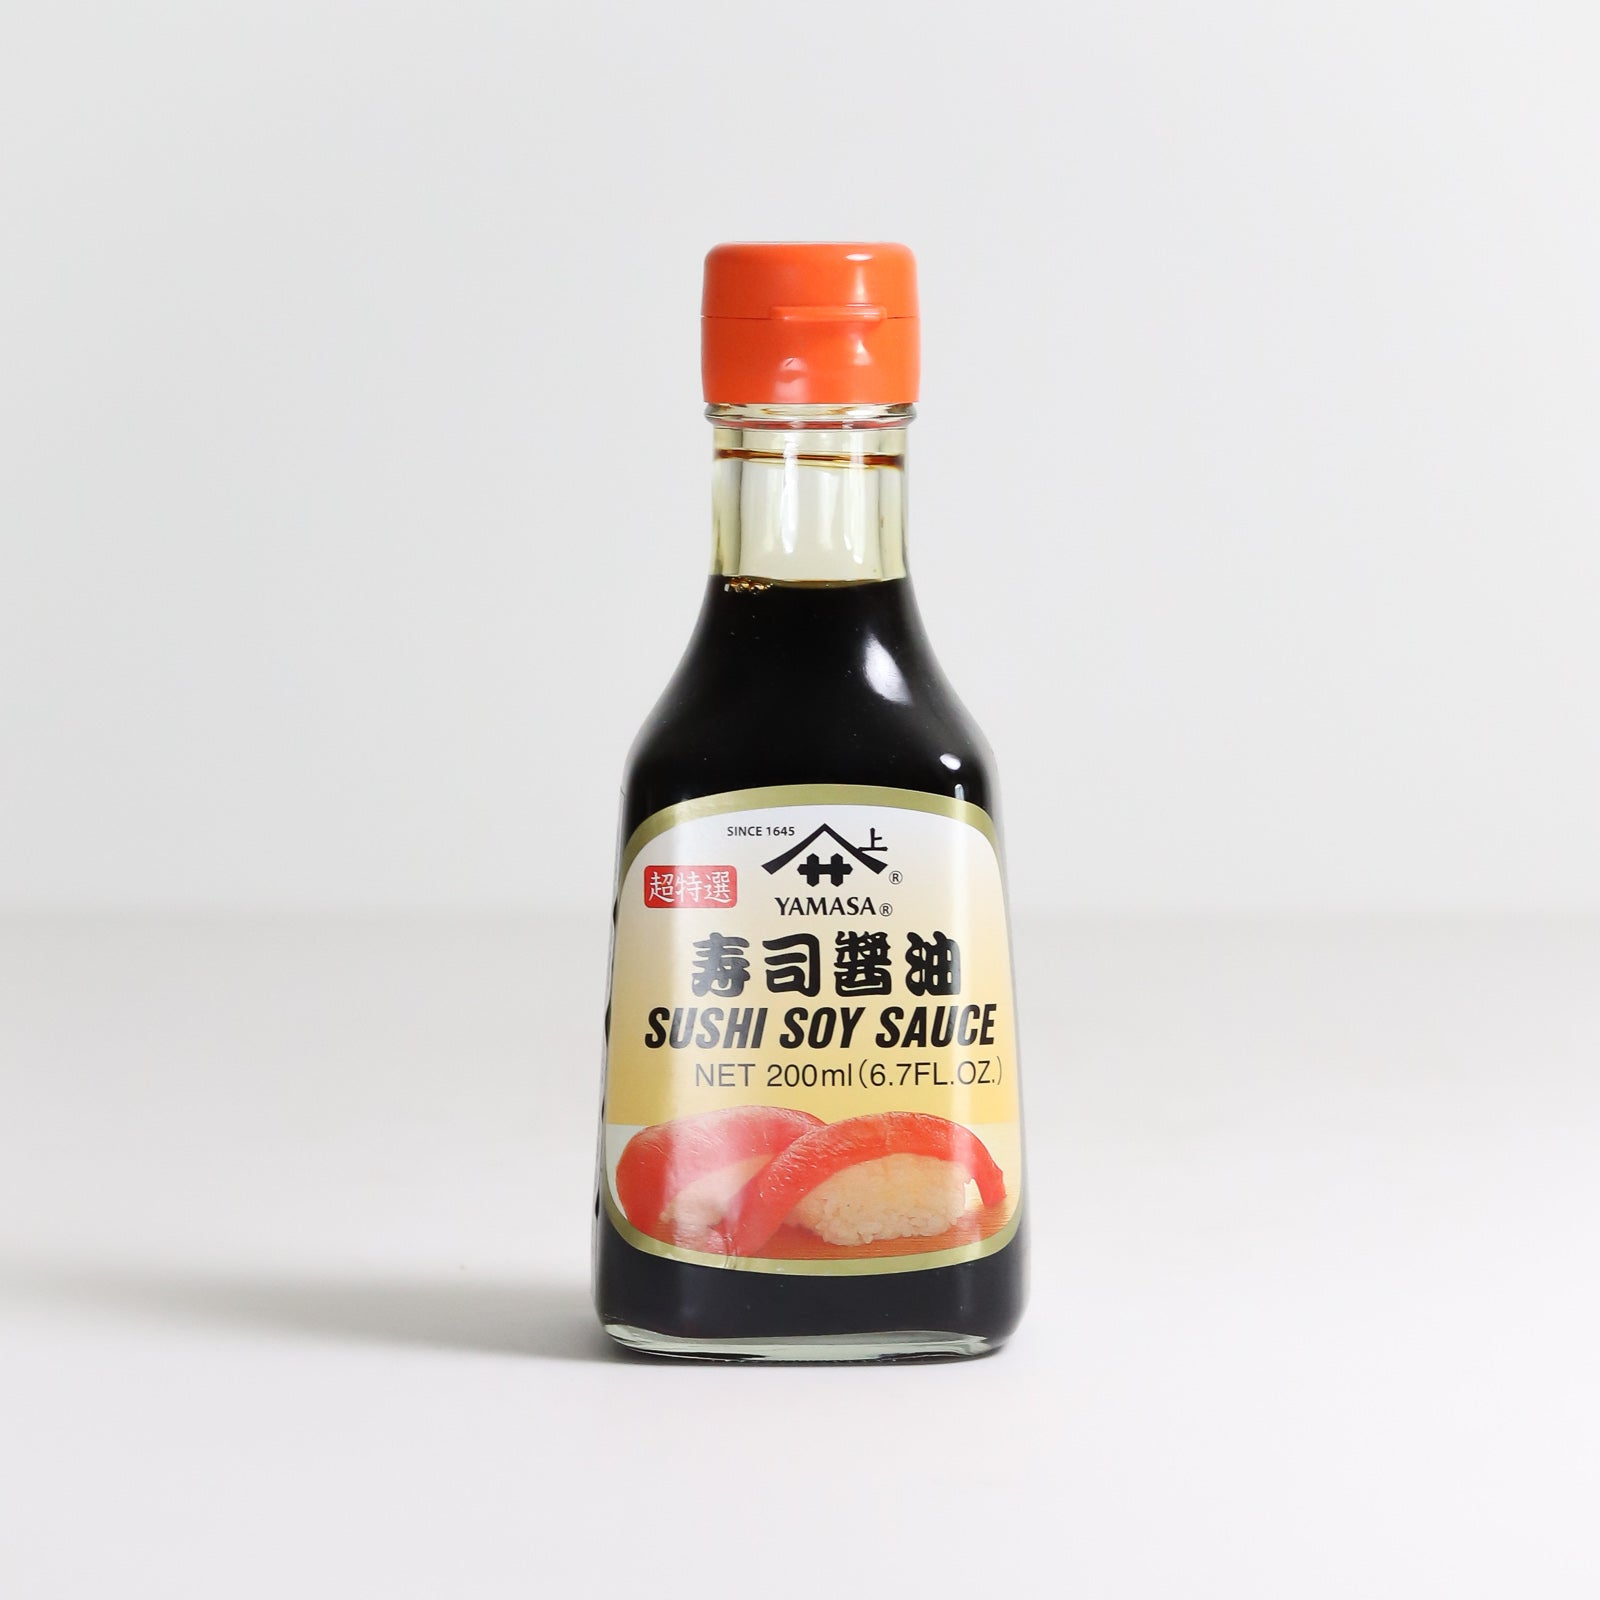 Sushi sauce. What sauces can be done at home soybean with wasabi not to offer